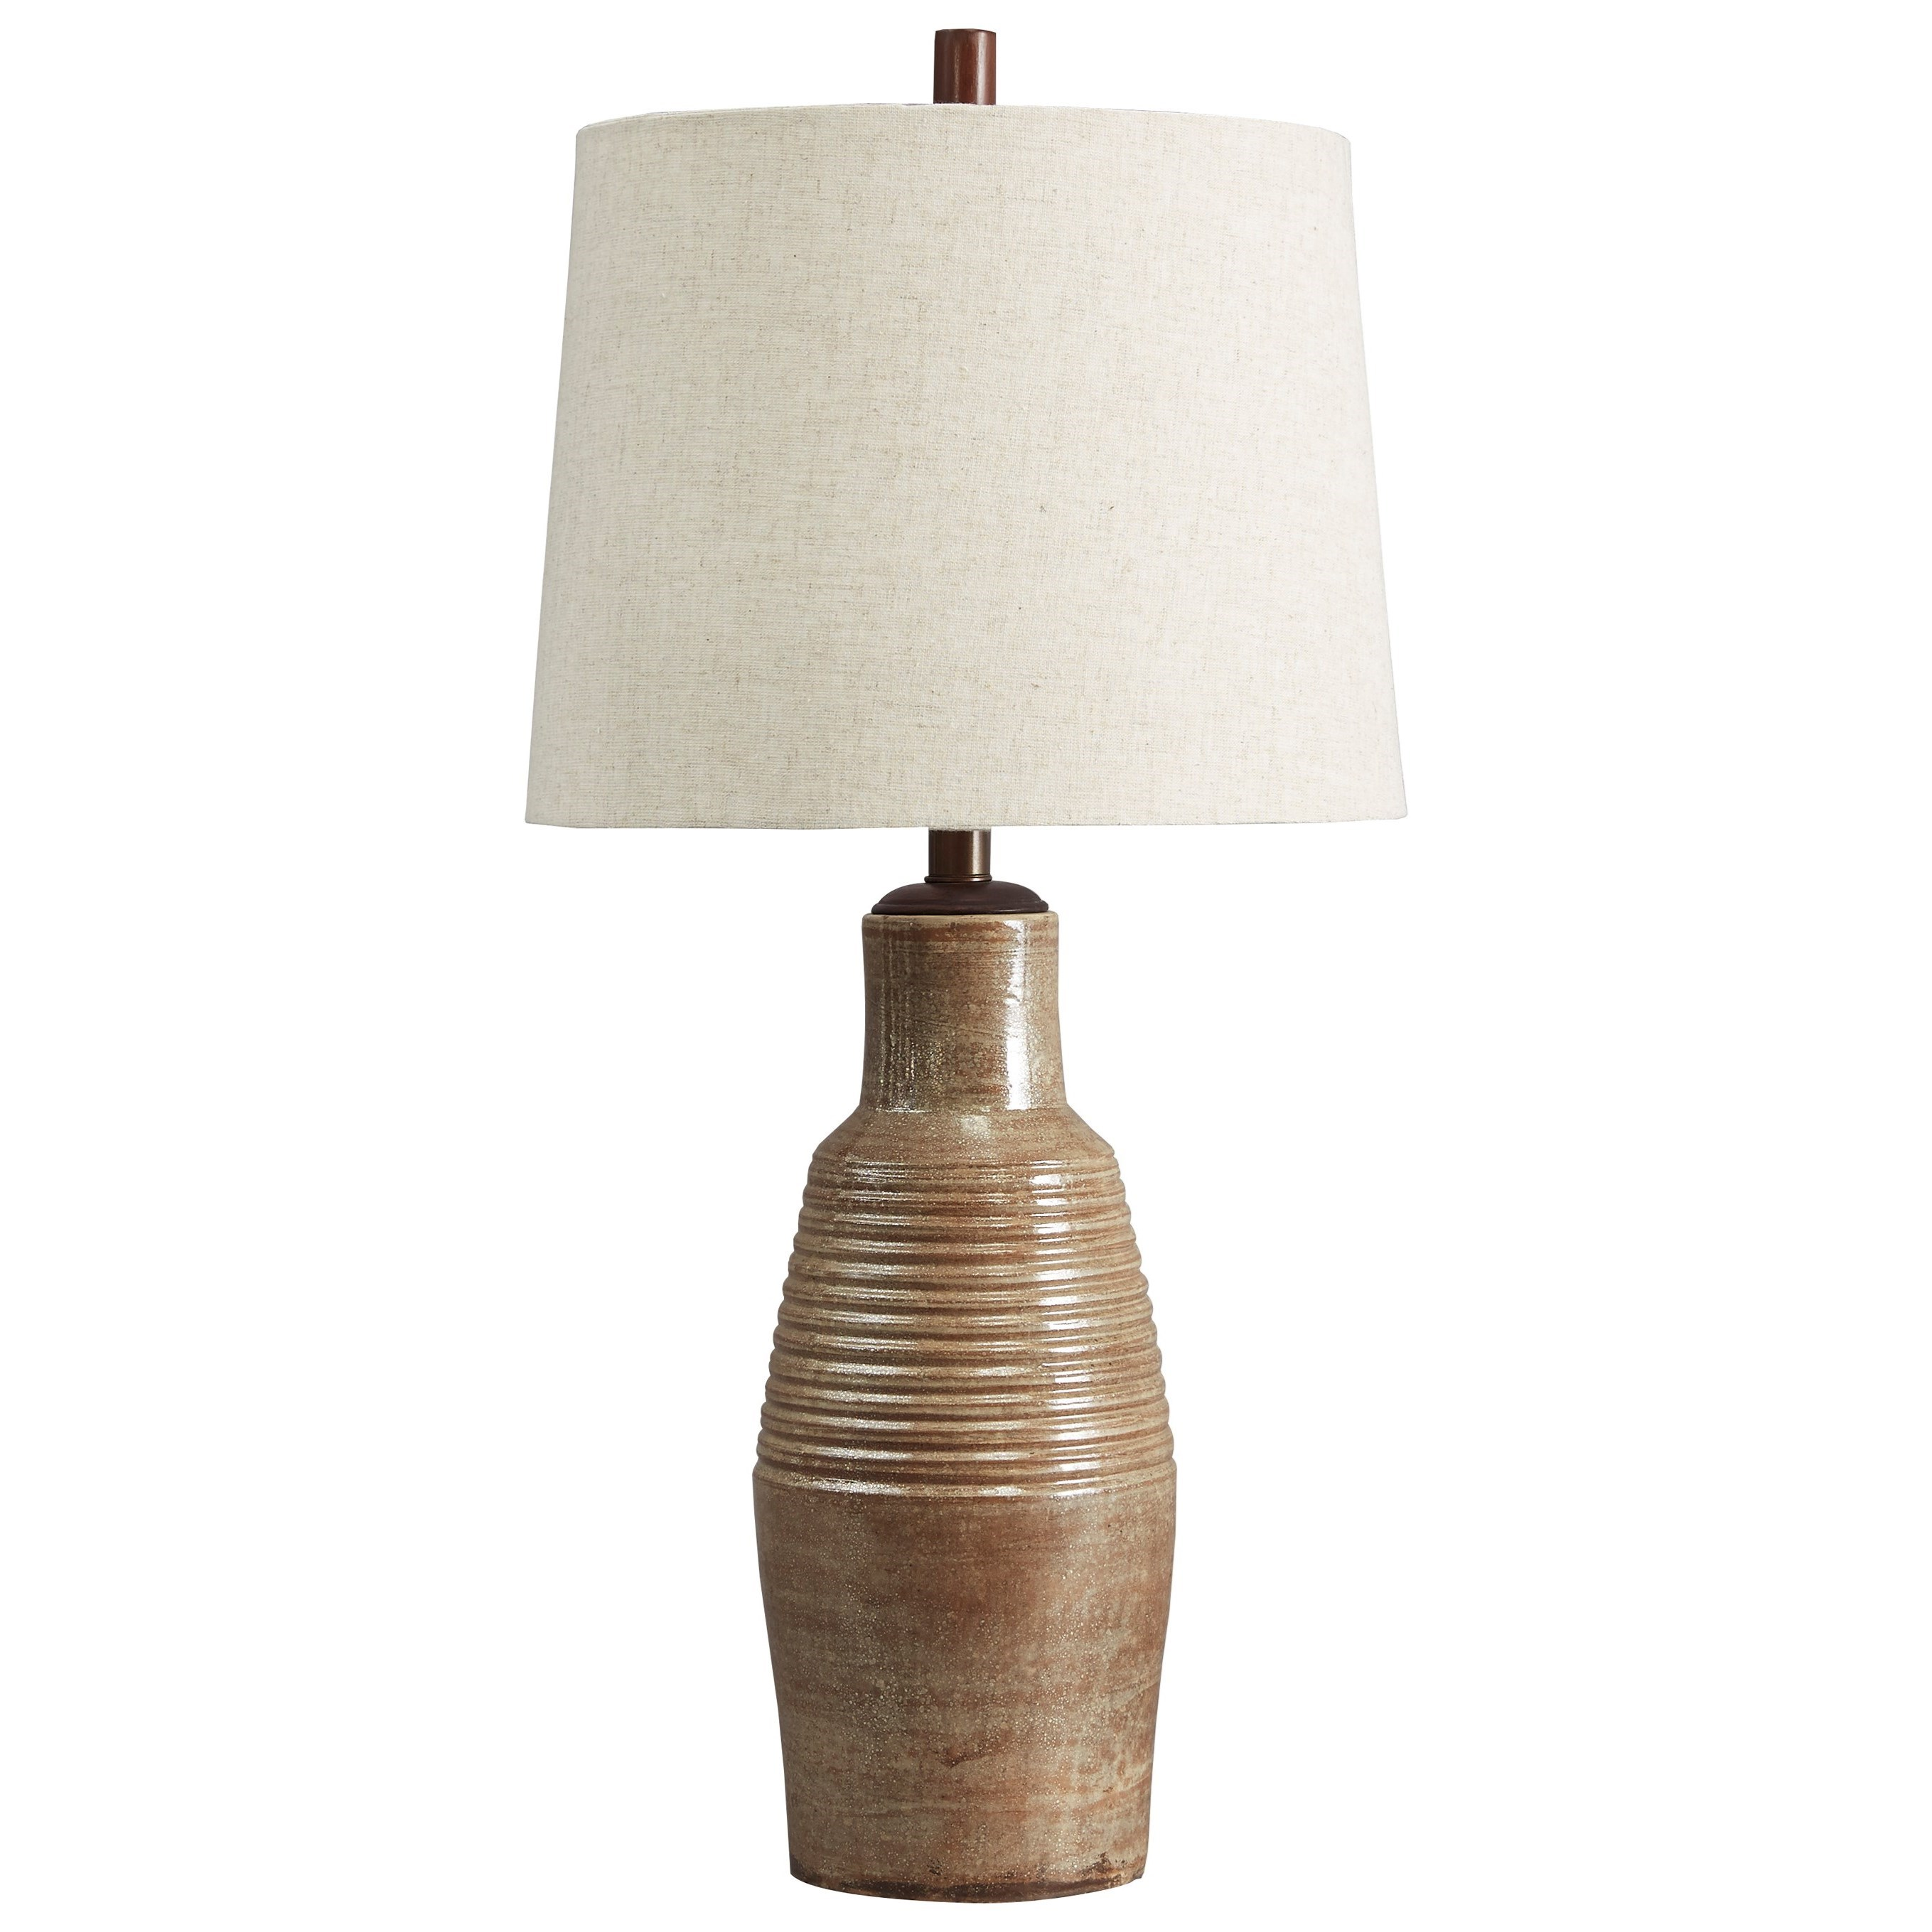 Lamps - Casual Calixto Terracotta Table Lamp by Ashley (Signature Design) at Johnny Janosik